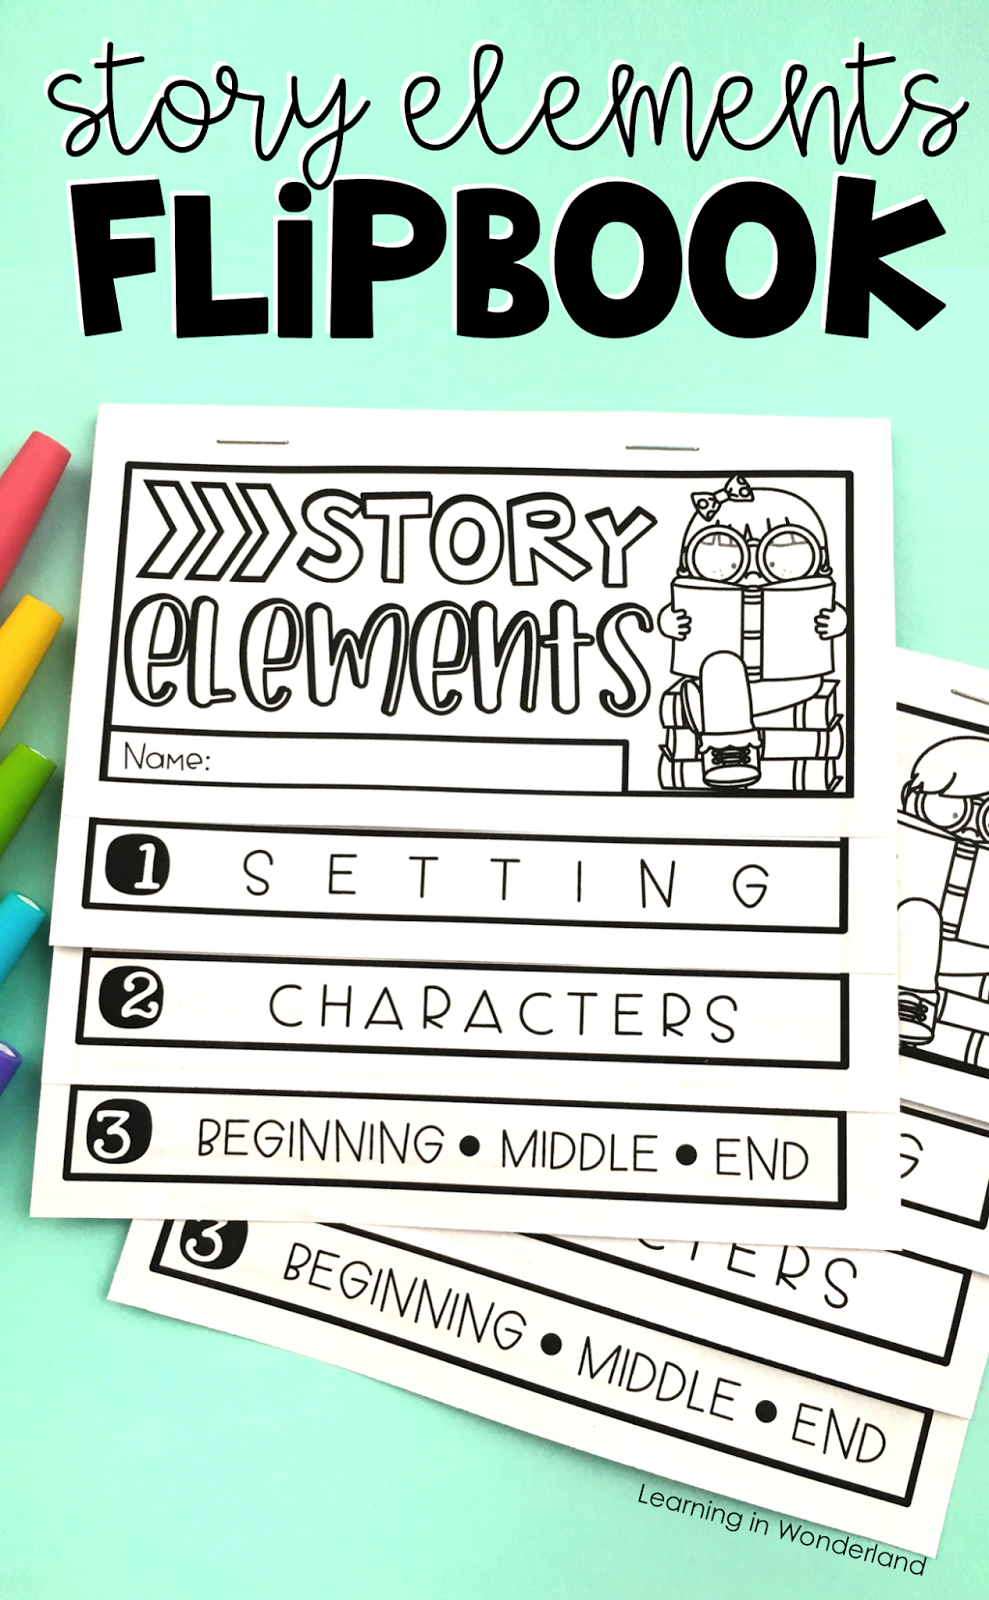 html flip book template - story elements flipbook learning in wonderland